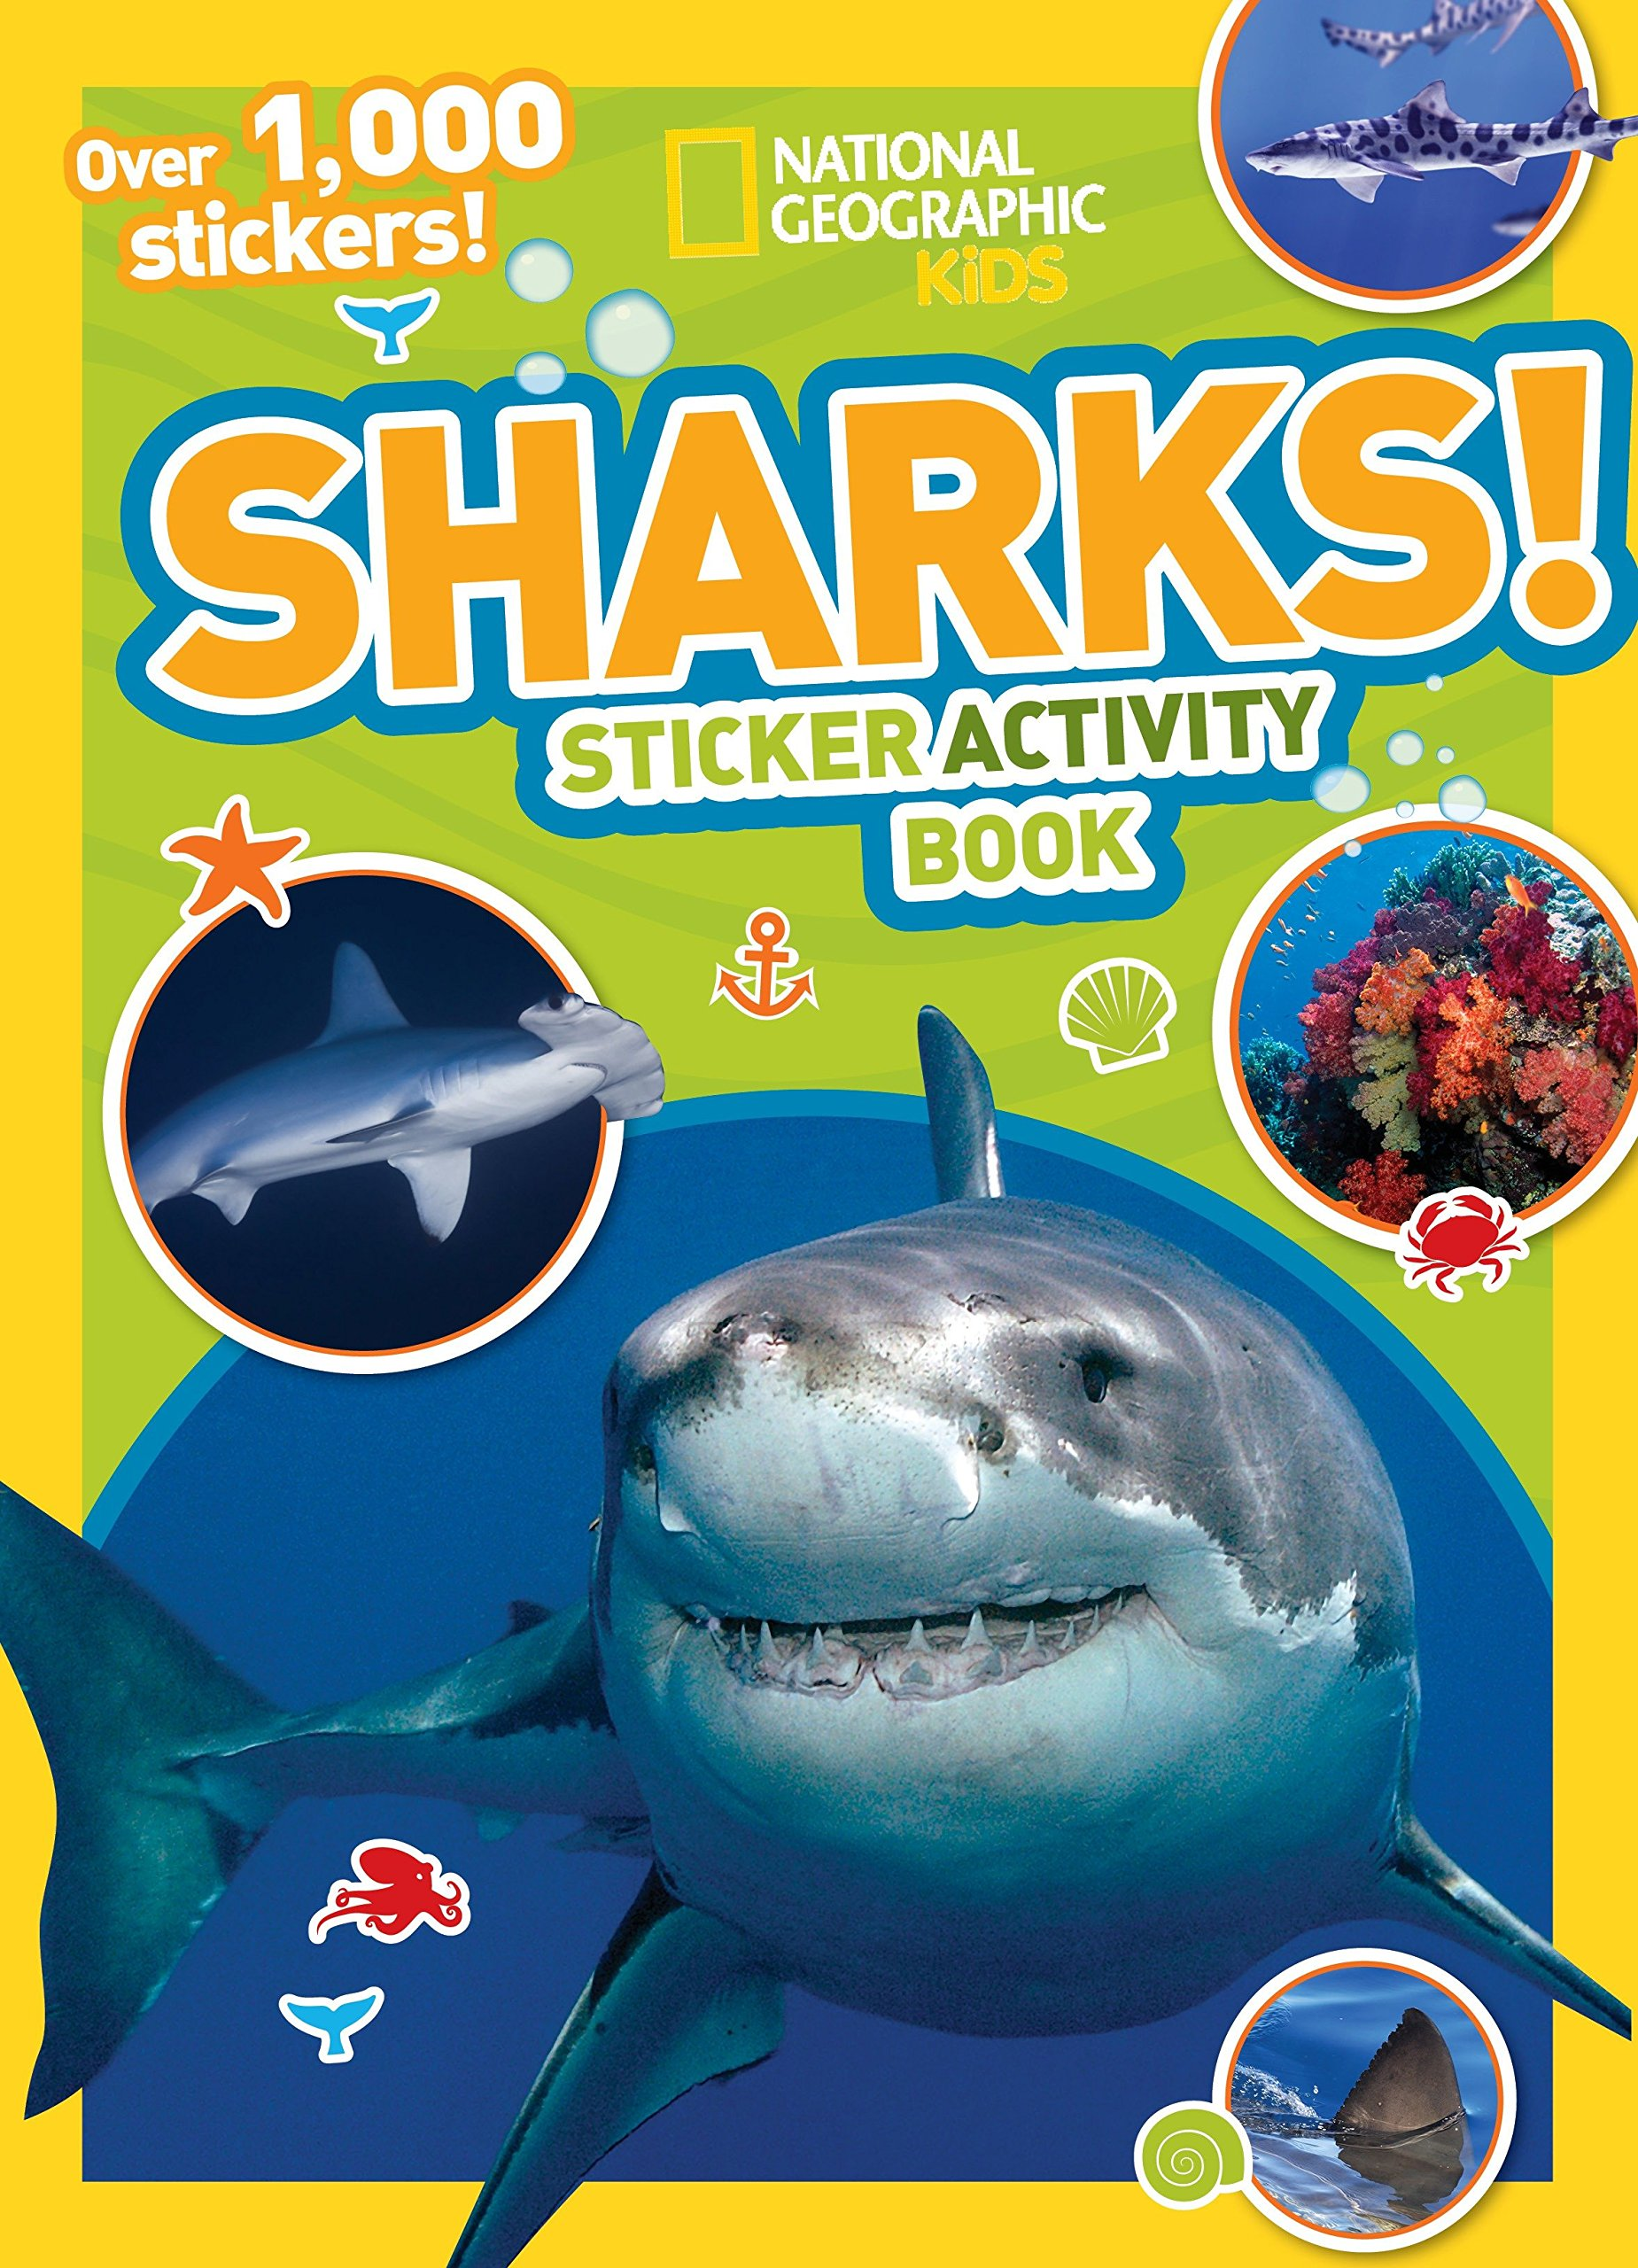 9188zlEy2BL - National Geographic Kids Sharks Sticker Activity Book: Over 1,000 Stickers